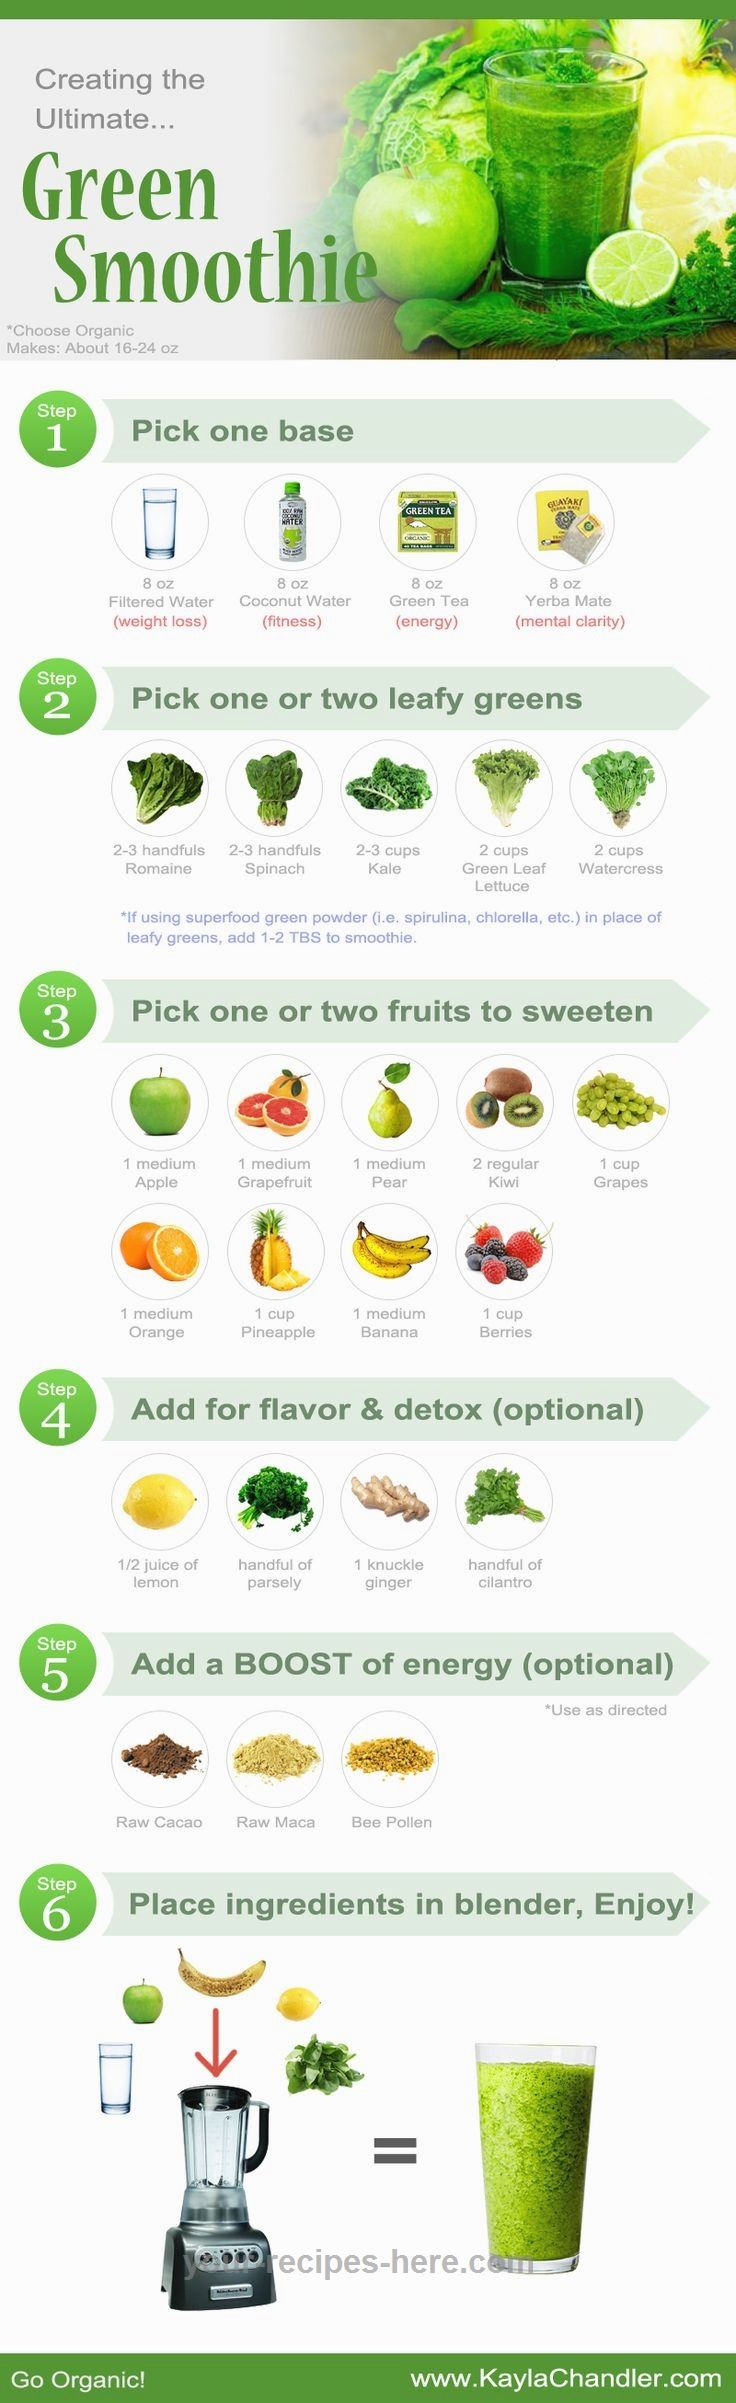 Guide to making the ultimate Green Smoothie for health, weight loss, and energy... Great for reference!  #kombuchaguru   #juicing  Also check out: